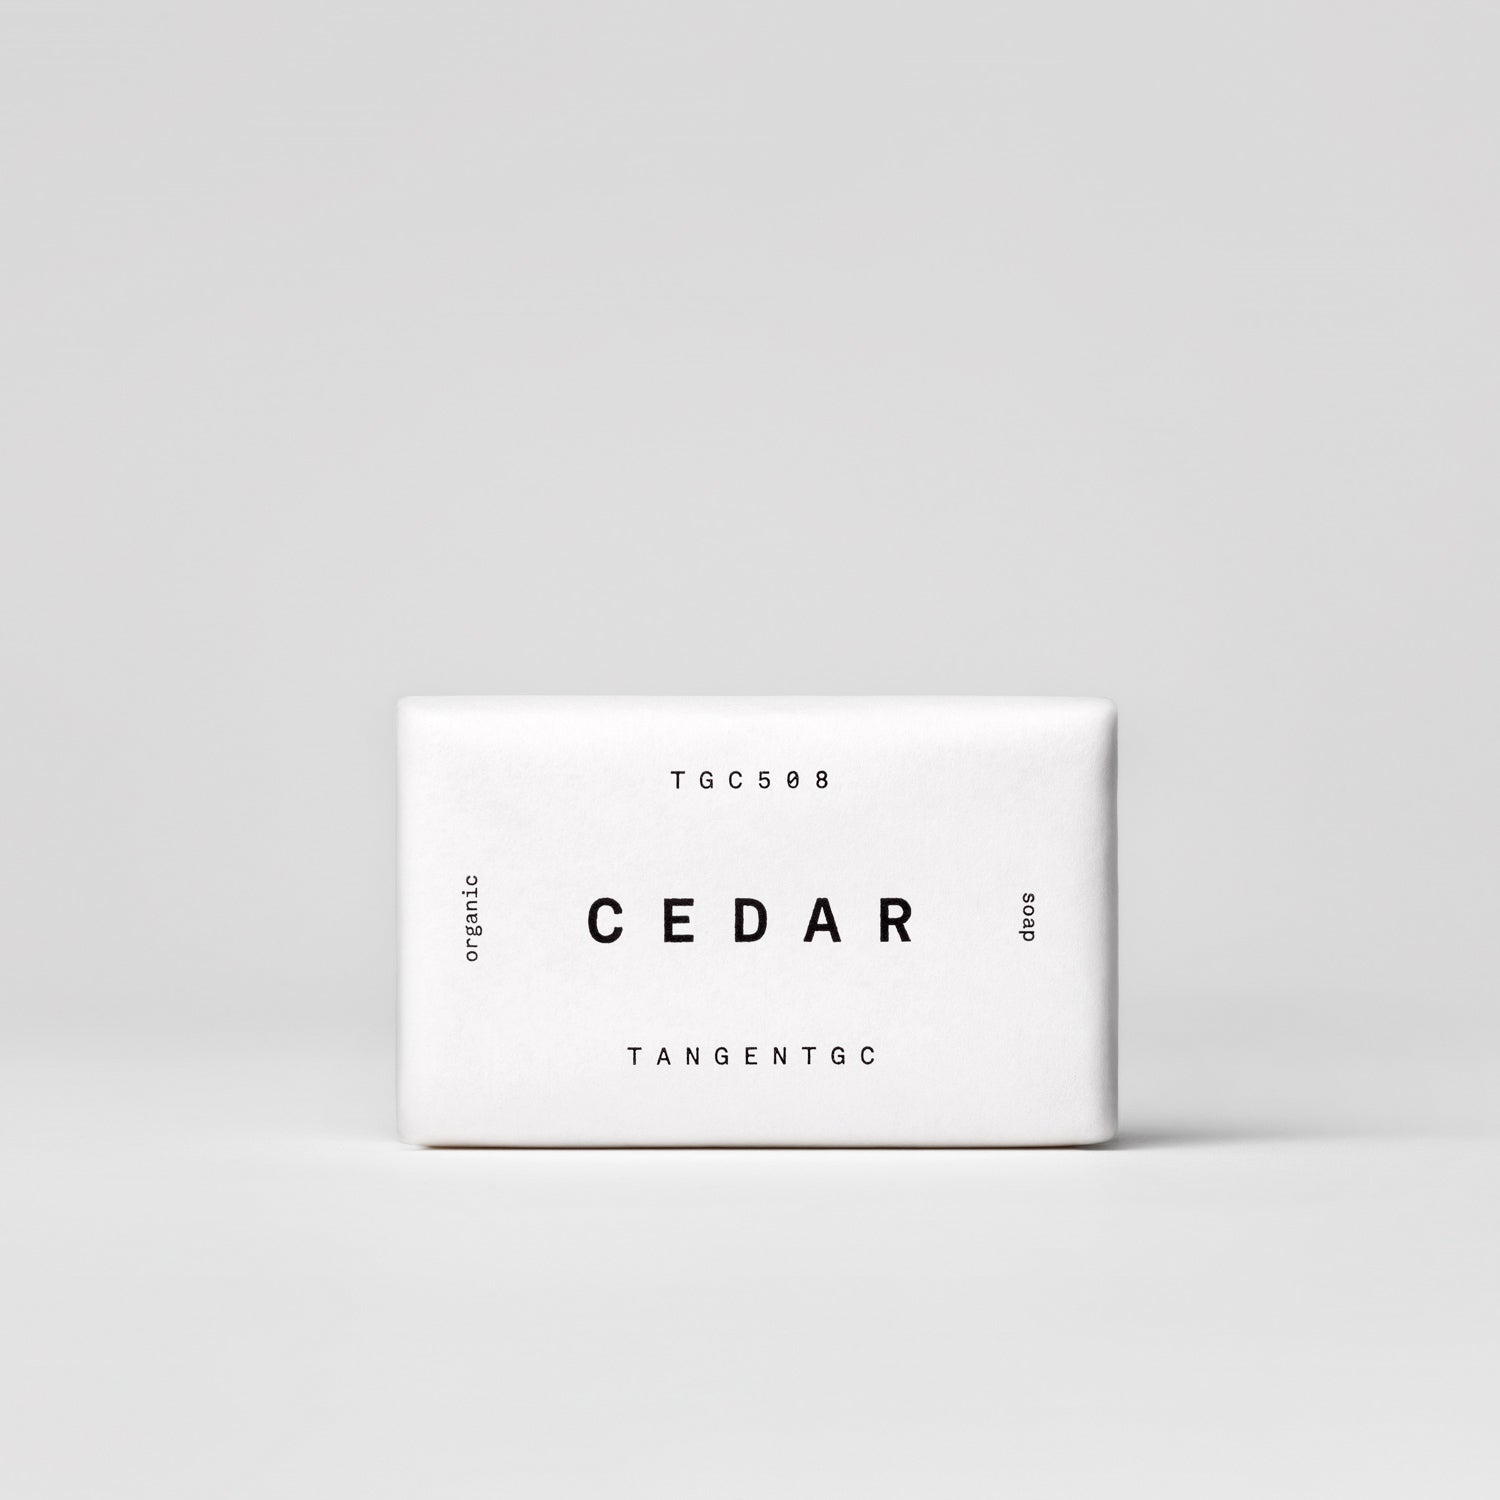 TGC508 cedar soap bar